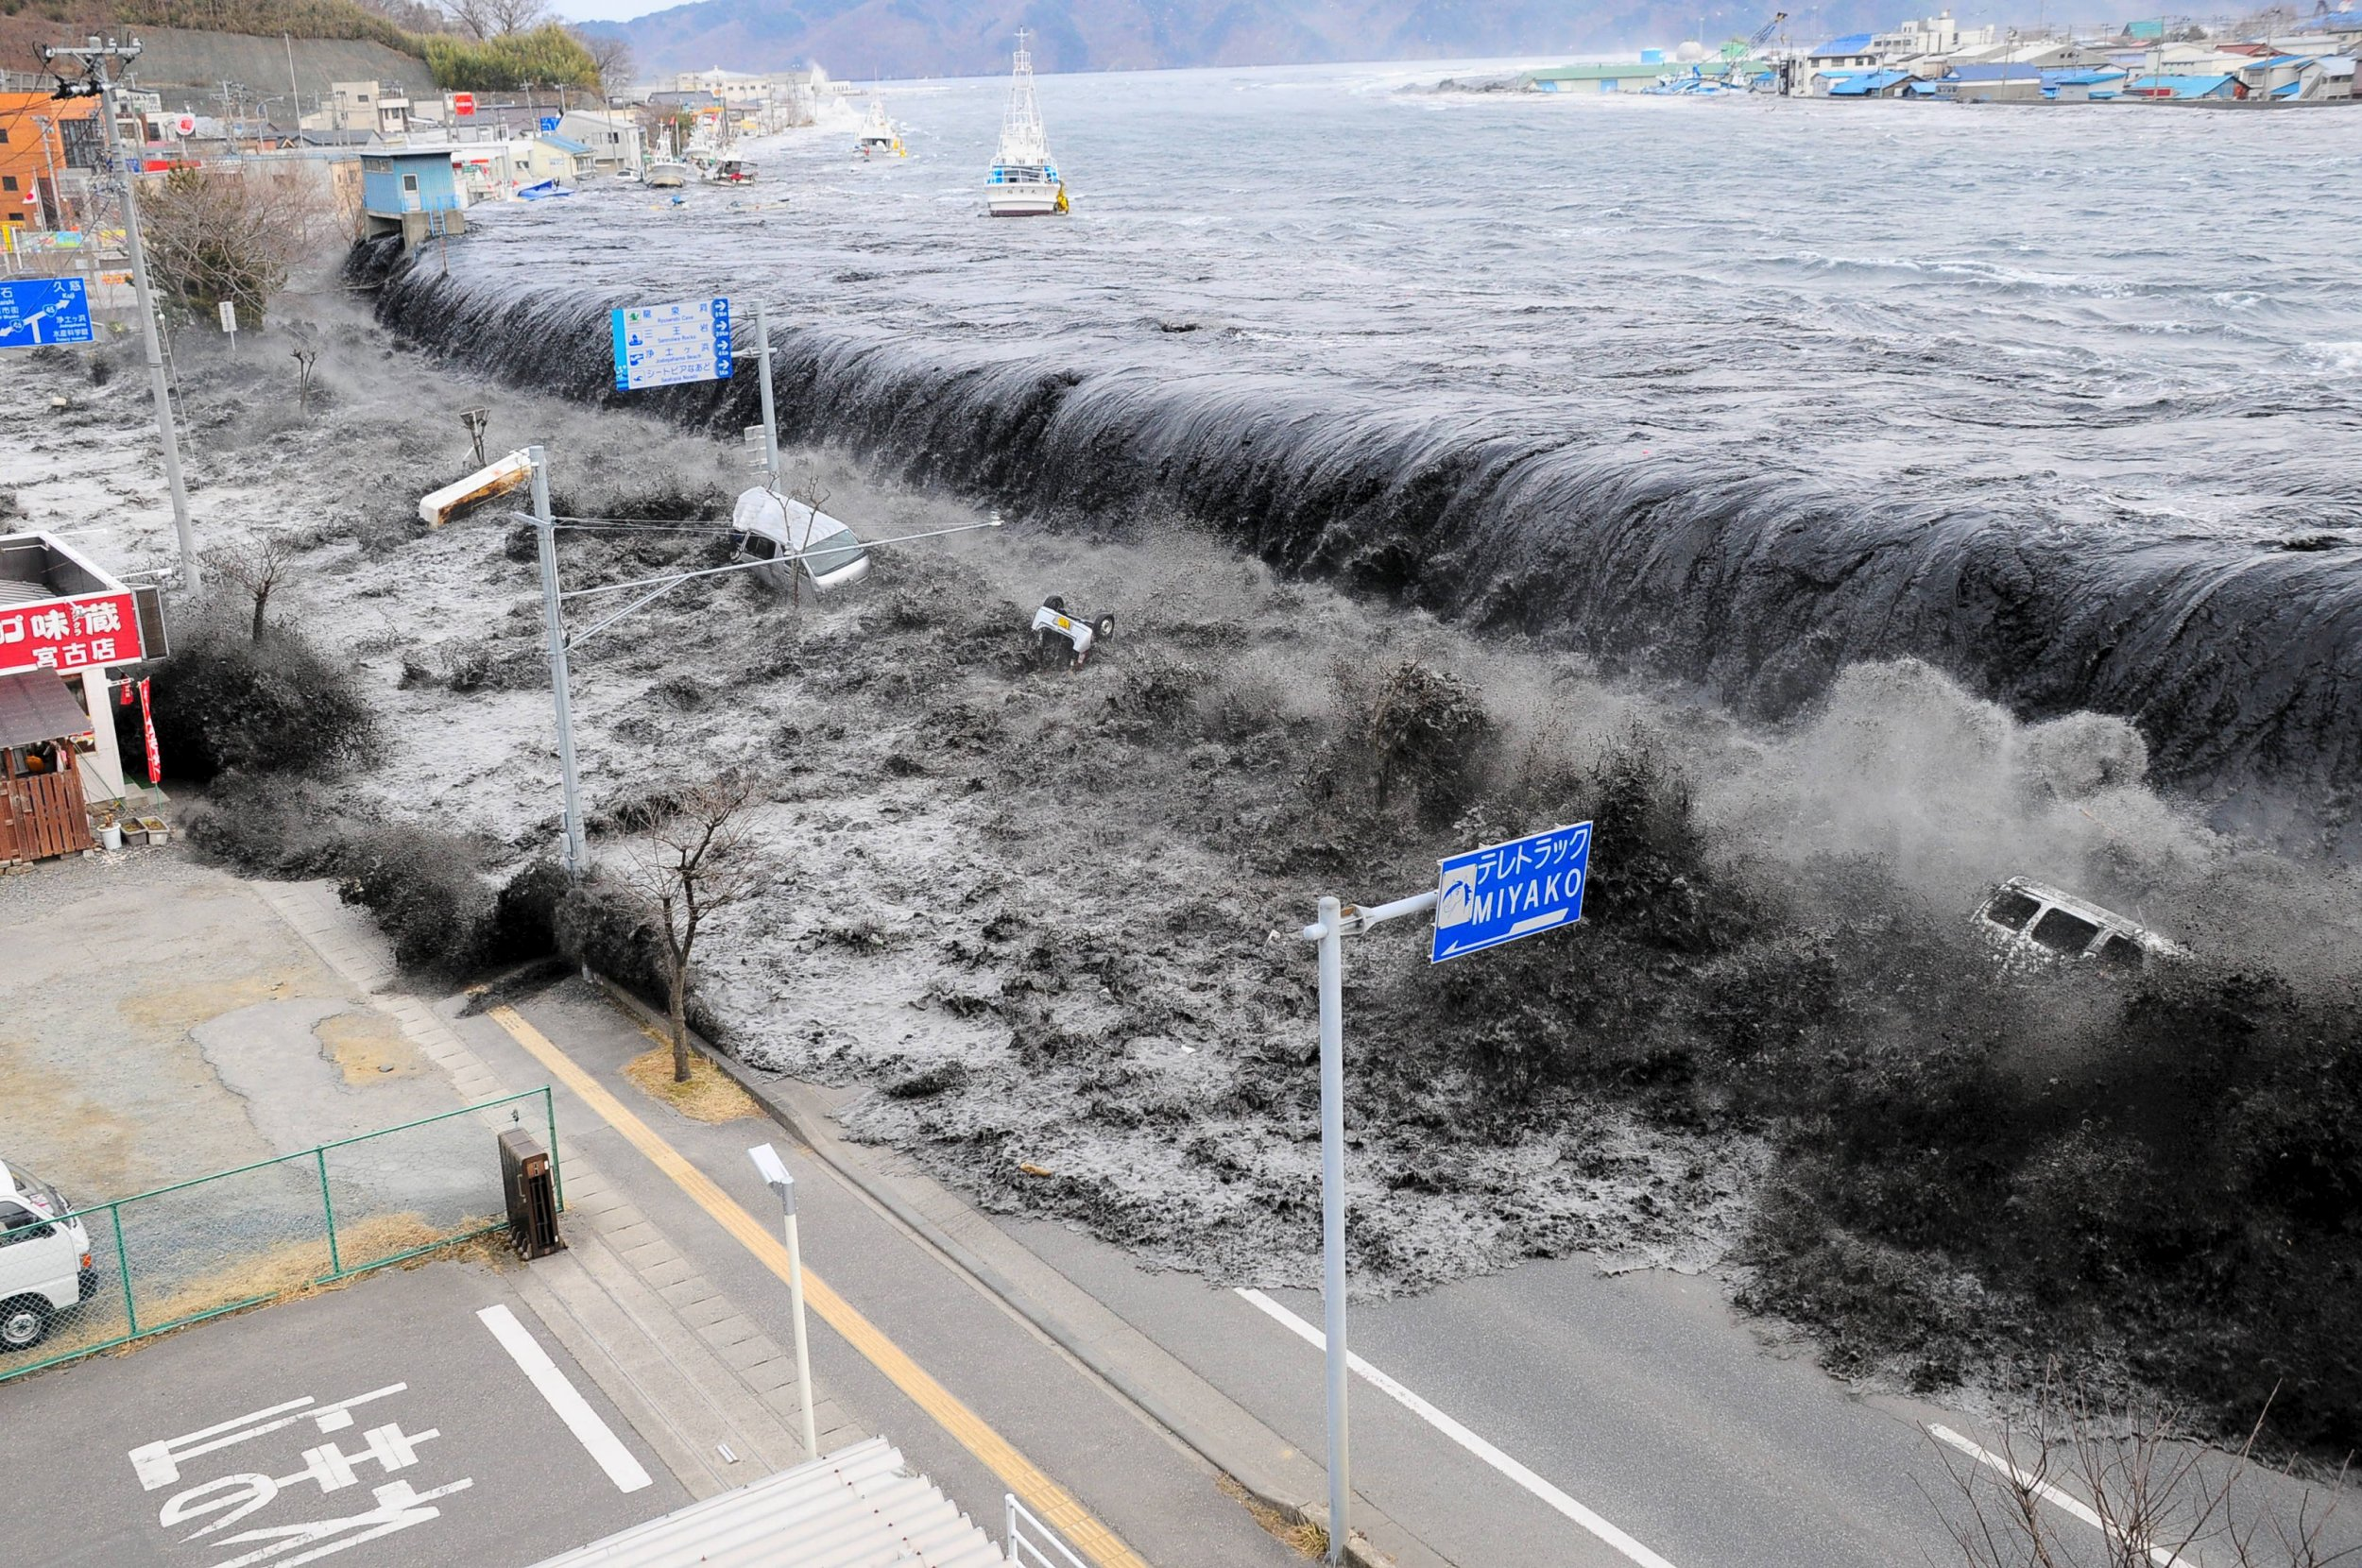 "A wave approaches Miyako City from the Heigawa estuary in Iwate Prefecture after the magnitude 8.9 earthquake struck the area March 11, 2011. Five years on from the tsunami that triggered meltdowns at Japan¿¢¿Ç¨¿Ñ¢s Fukushima nuclear plant, the page is anything but turned. A magnitude 9 earthquake and towering tsunami on March 11, 2011 killed nearly 16,000 people along Japan's northeastern coast and left more than 2,500 missing. The 10-metre (33-foot) tsunami swept away everything in its path, including houses, ships, cars and farm buildings. REUTERS/Mainichi ShimbunFOR EDITORIAL USE ONLY. NOT FOR SALE FOR MARKETING OR ADVERTISING CAMPAIGNS. JAPAN OUT. NO COMMERCIAL OR EDITORIAL SALES IN JAPAN SEARCH ""FROM THE FILES JAPAN DISASTER"" FOR ALL IMAGES SEARCH ""FROM THE FILES JAPAN DISASTER"" FOR ALL IMAGES TPX IMAGES OF THE DAY"